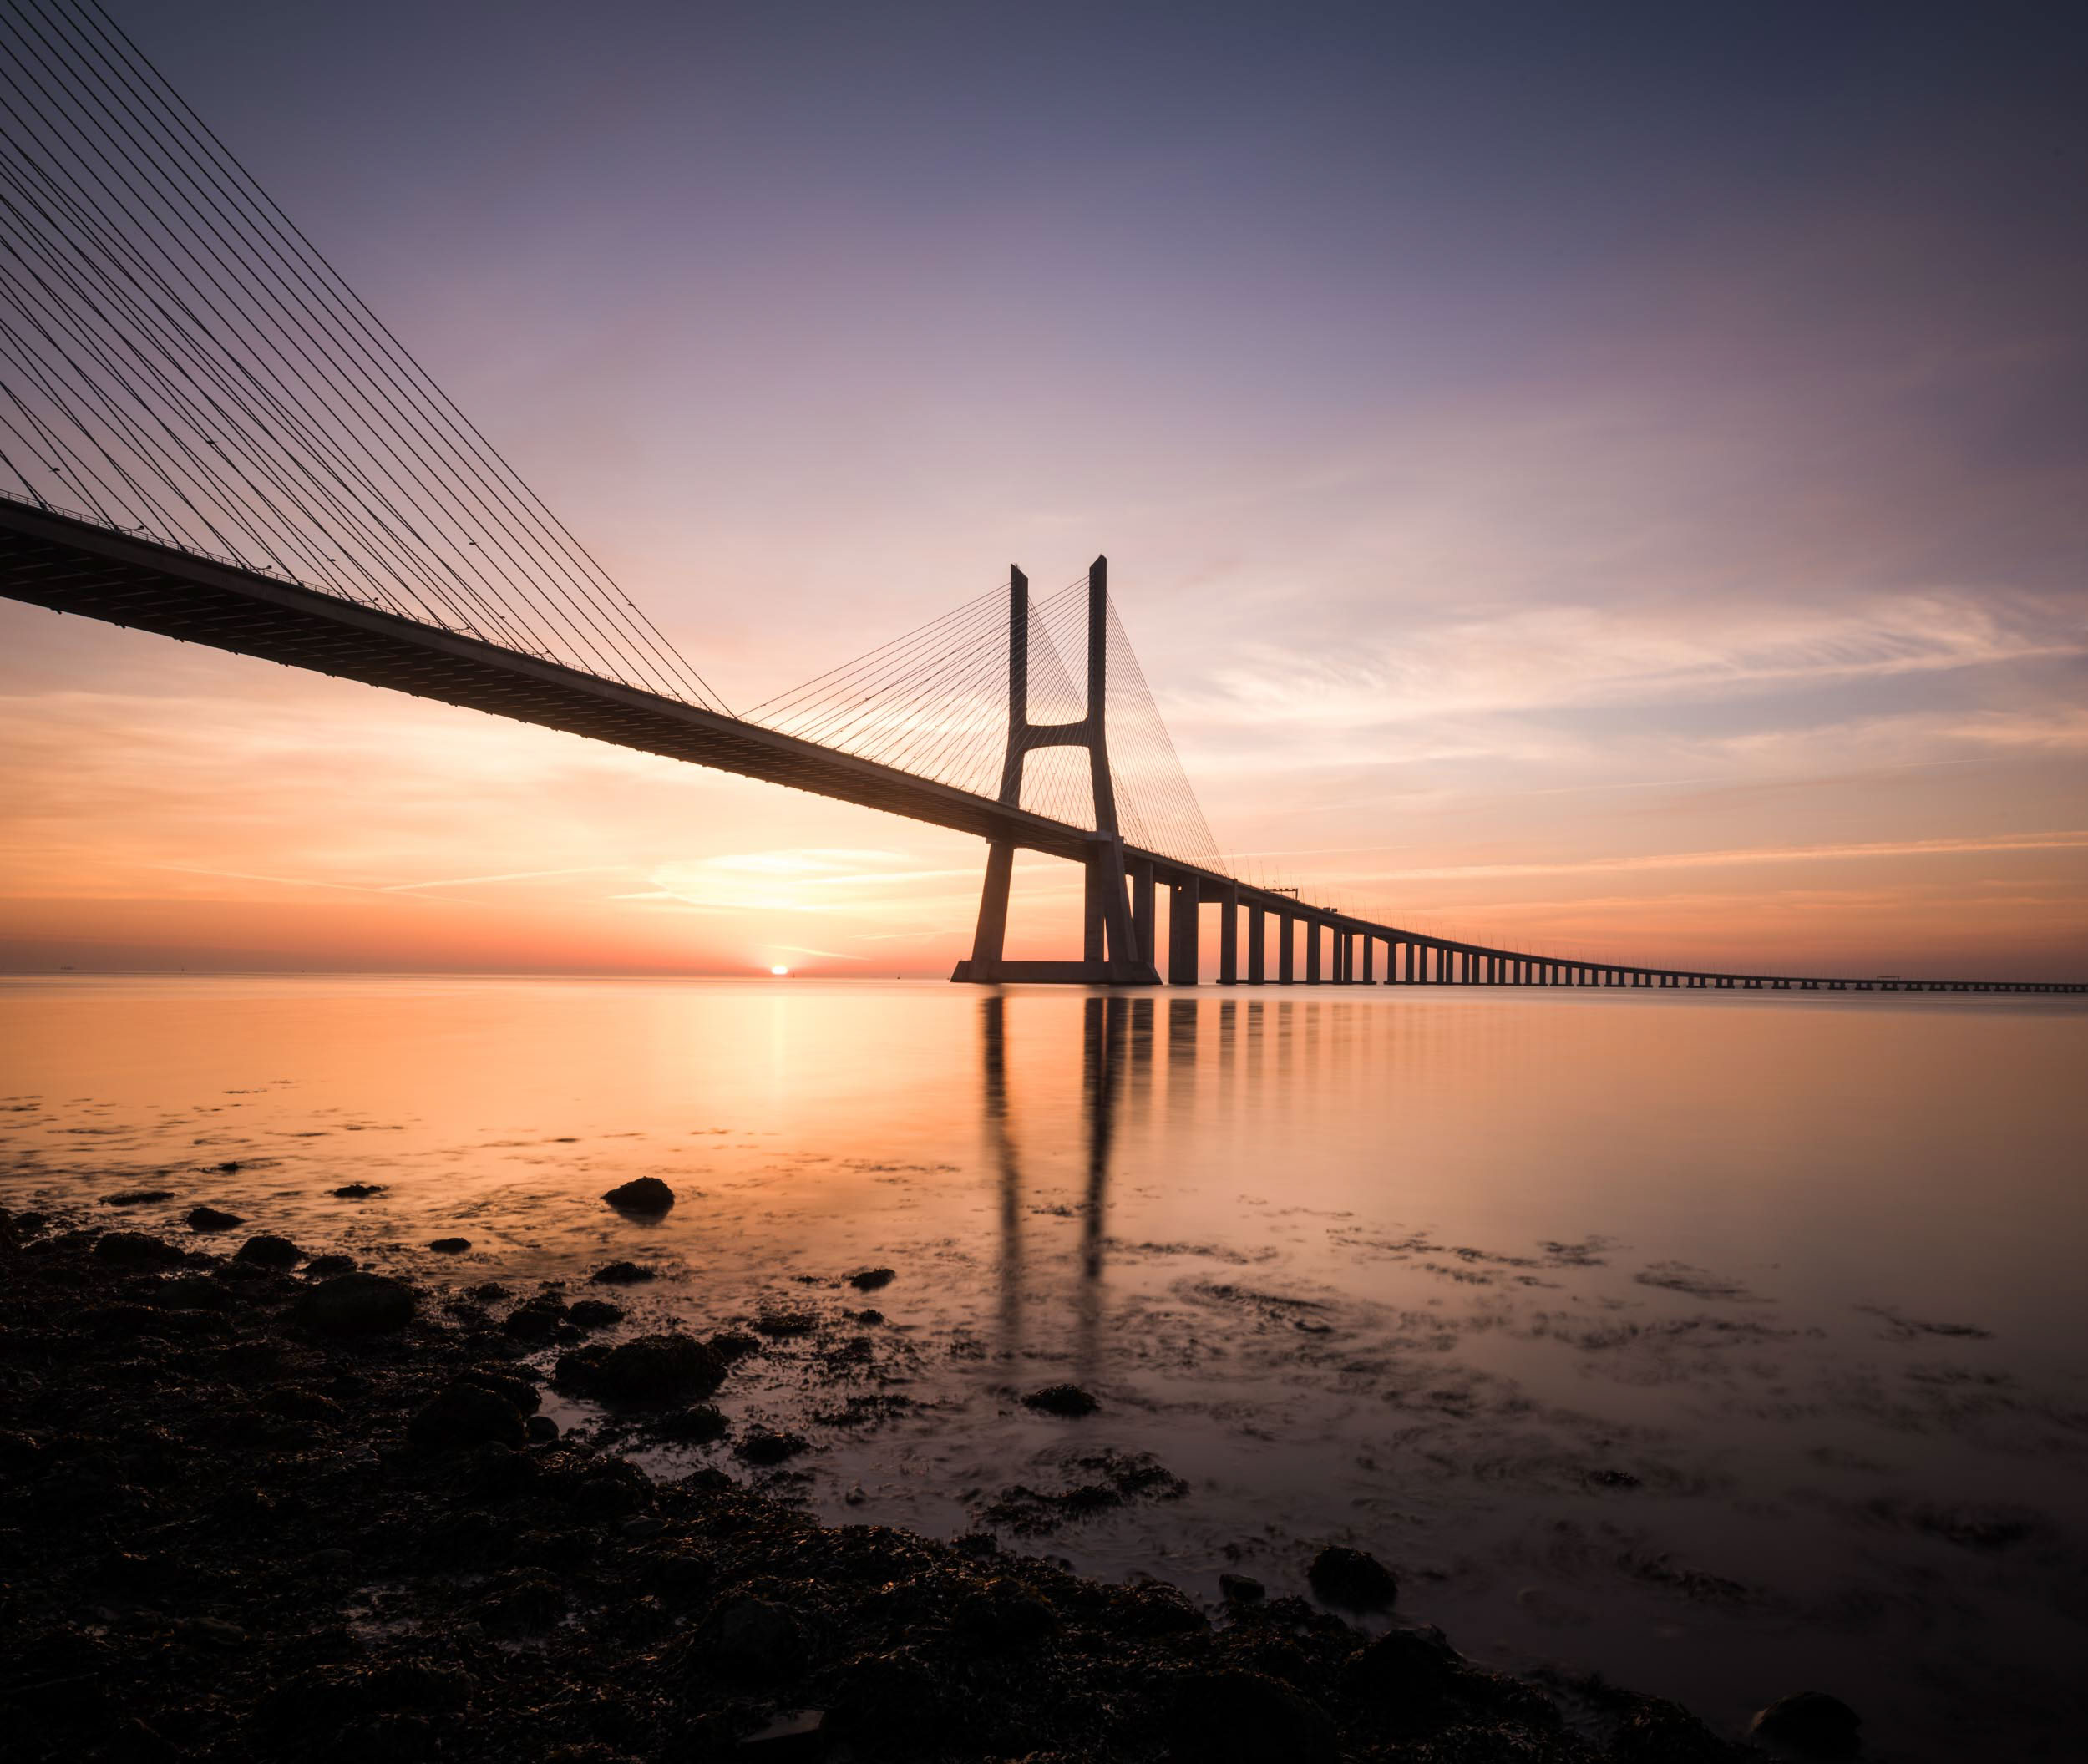 vasco-da-gama-bridge-dawn-sunrise-travel-photography-lisbon-portugal